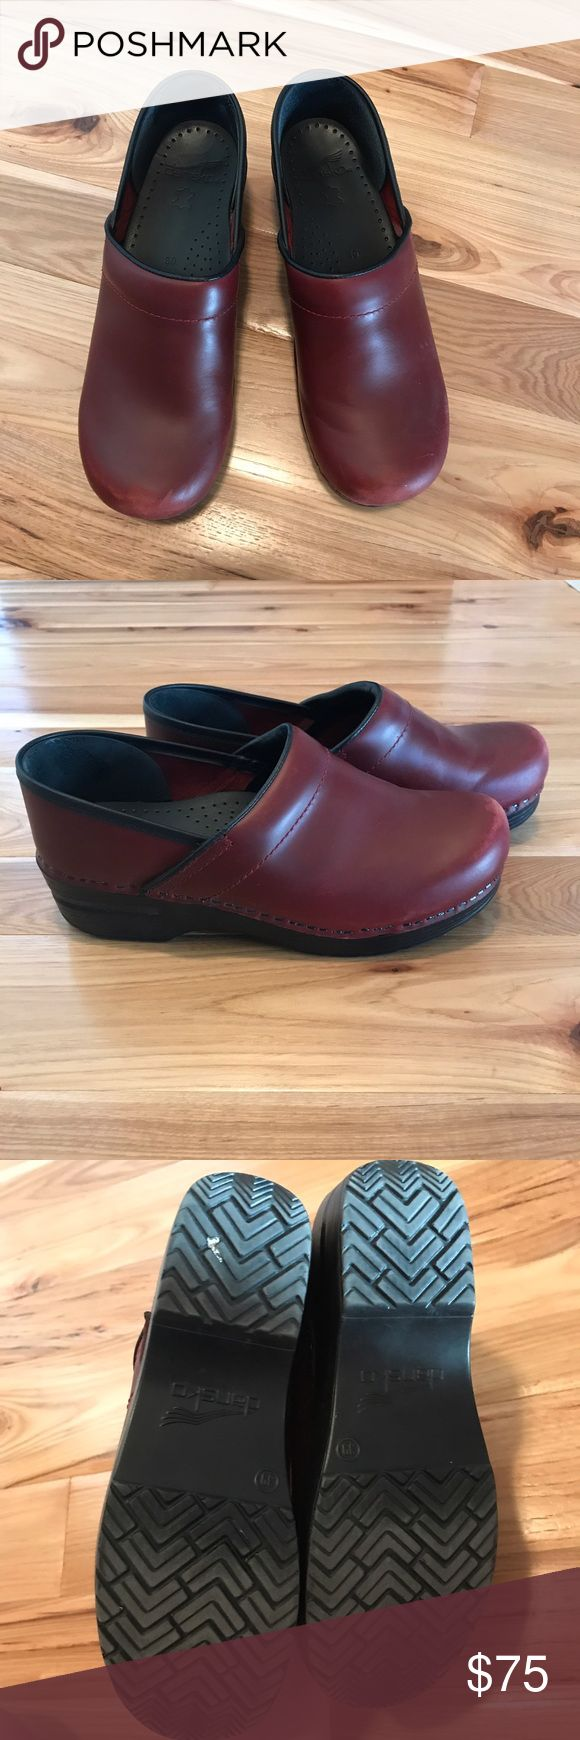 Dansko pro clog crimson leather upper size 39 Dansko professional clog. Crimson leather uppers. Hardly worn and in great condition! Minor scuffing on toes, as shown in pics, hardly noticeable. Size is euro 39- equivalent to US 9 Dansko Shoes Mules & Clogs